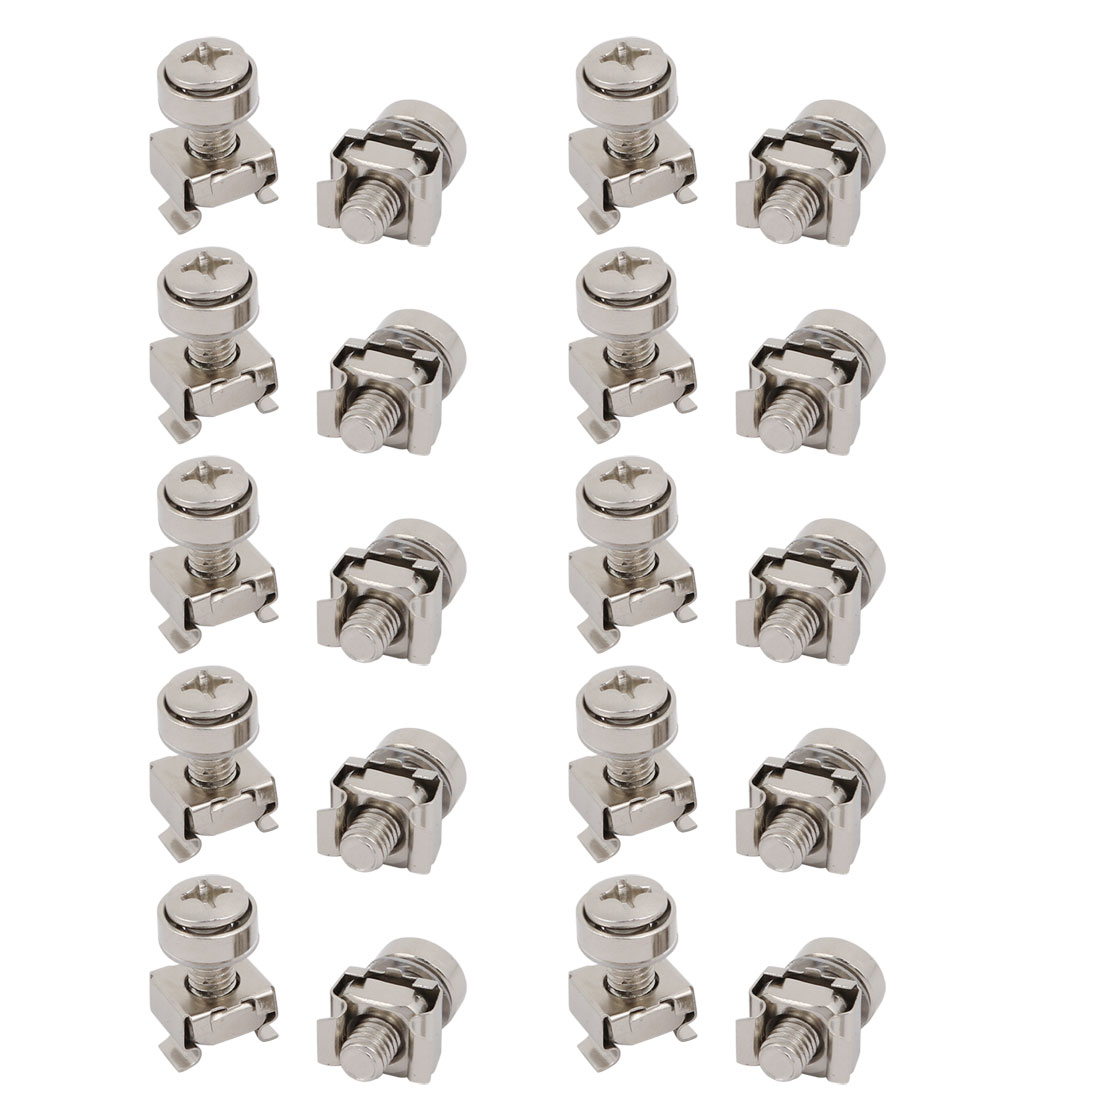 20pcs M6x20mm Carbon Steel Cage Nuts w Screws Washers for Server Rack Cabinet